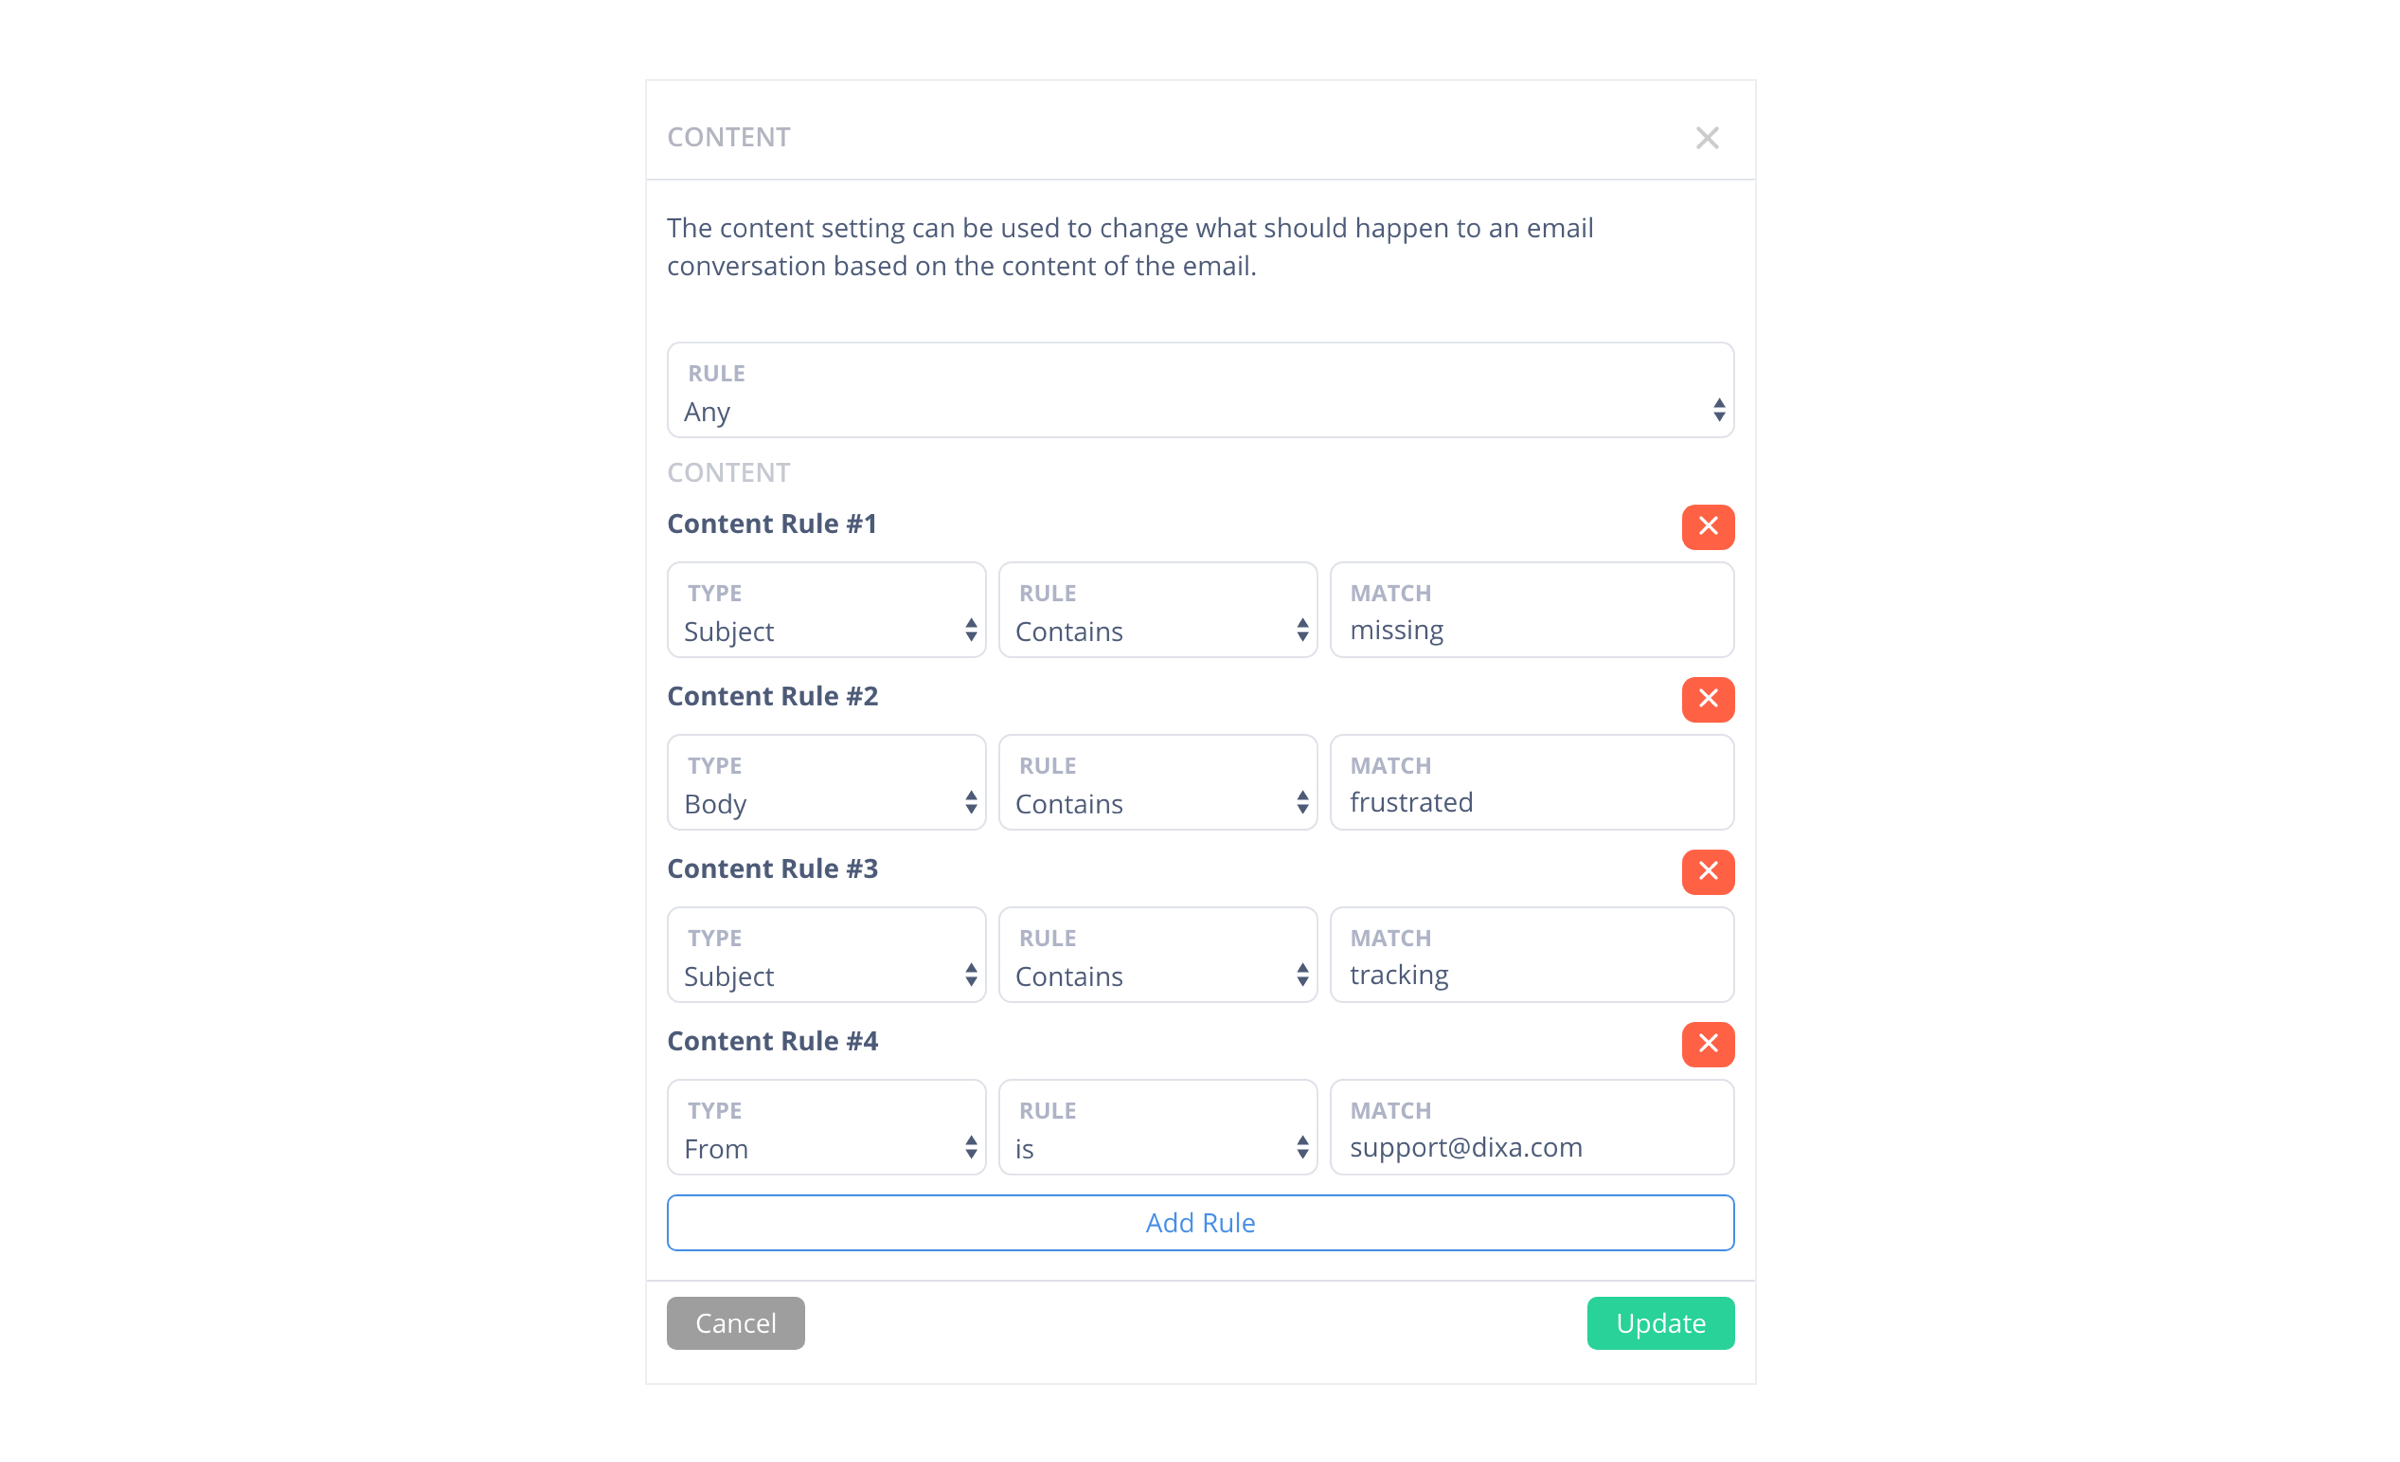 Content Rules Action in Email Flow Editor